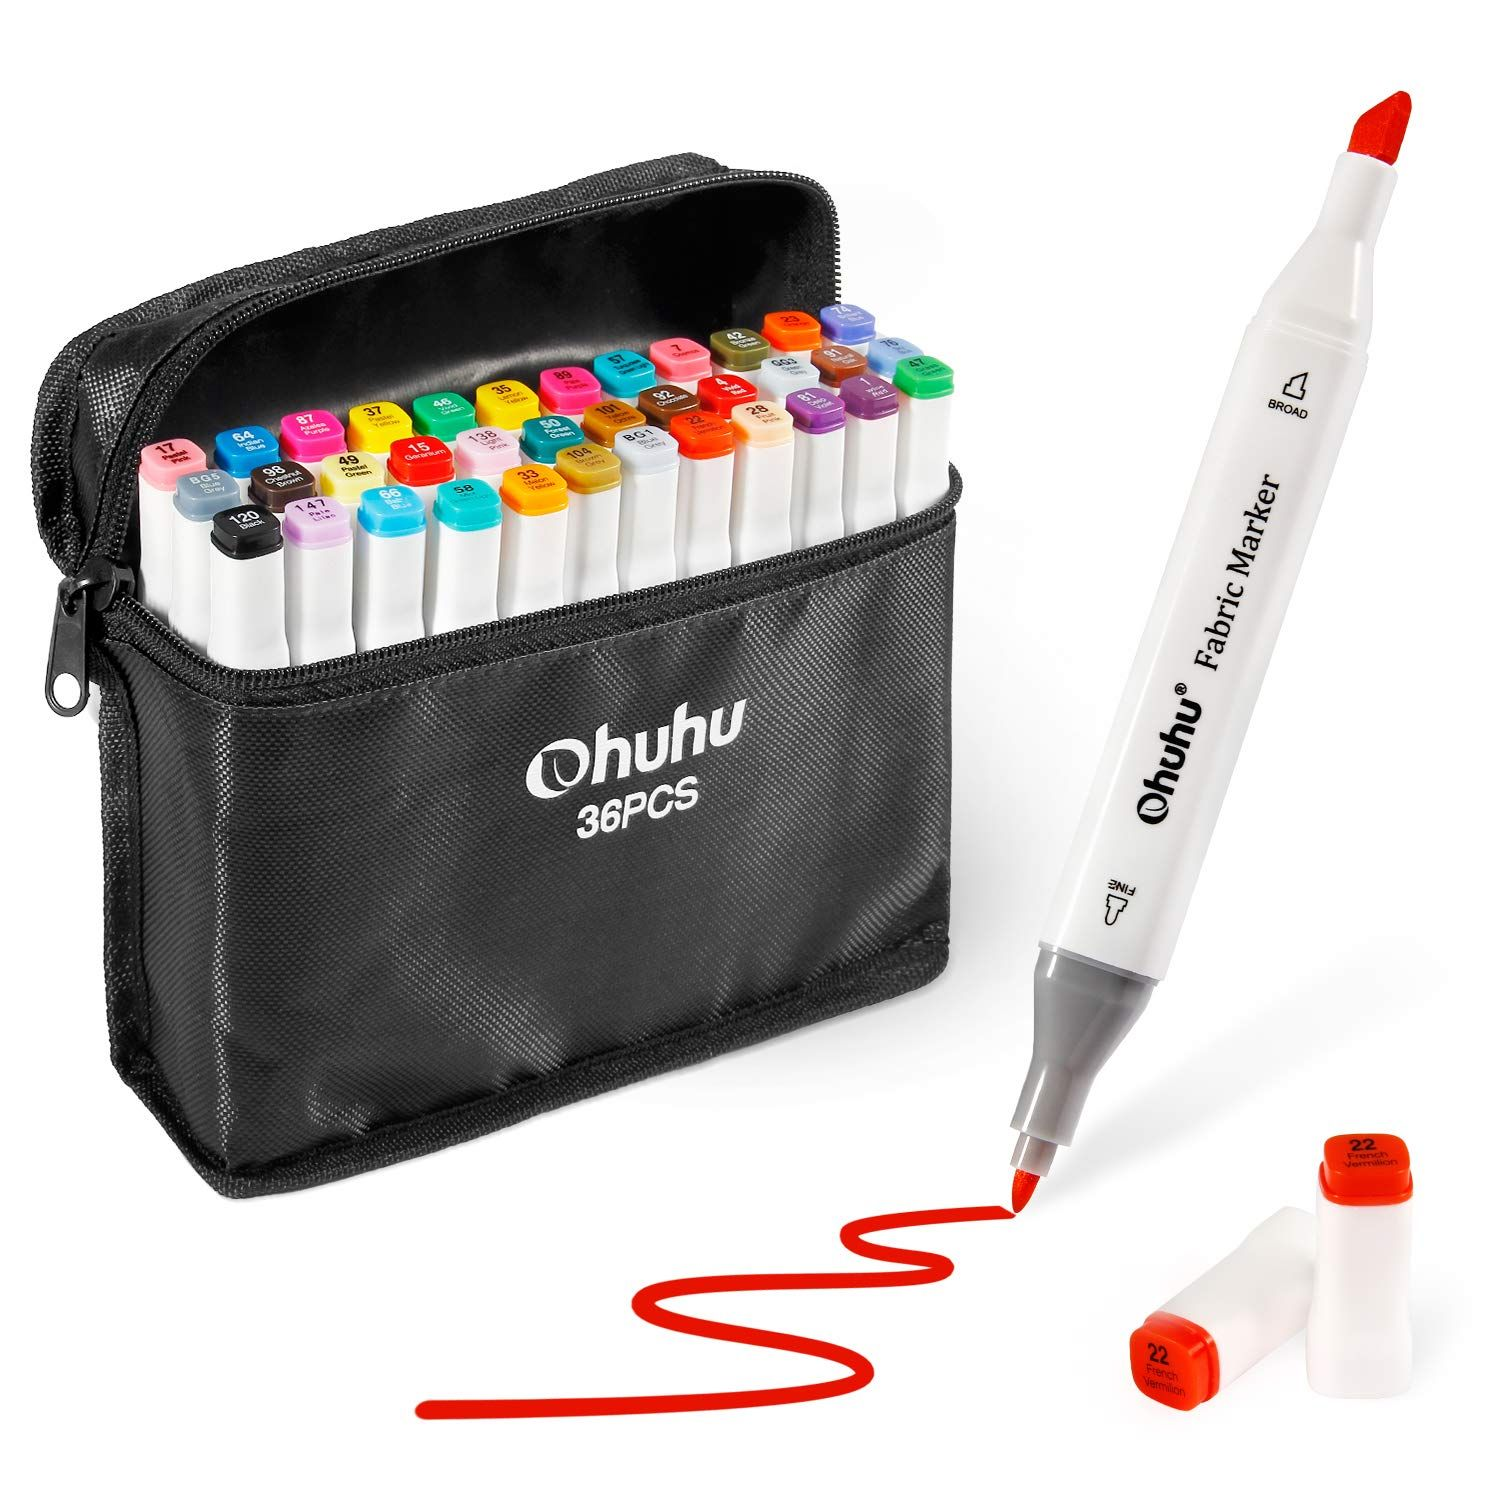 Fabric Markers Permanent 36 Colors Of Ohuhu Dual Tip Fabric Paint